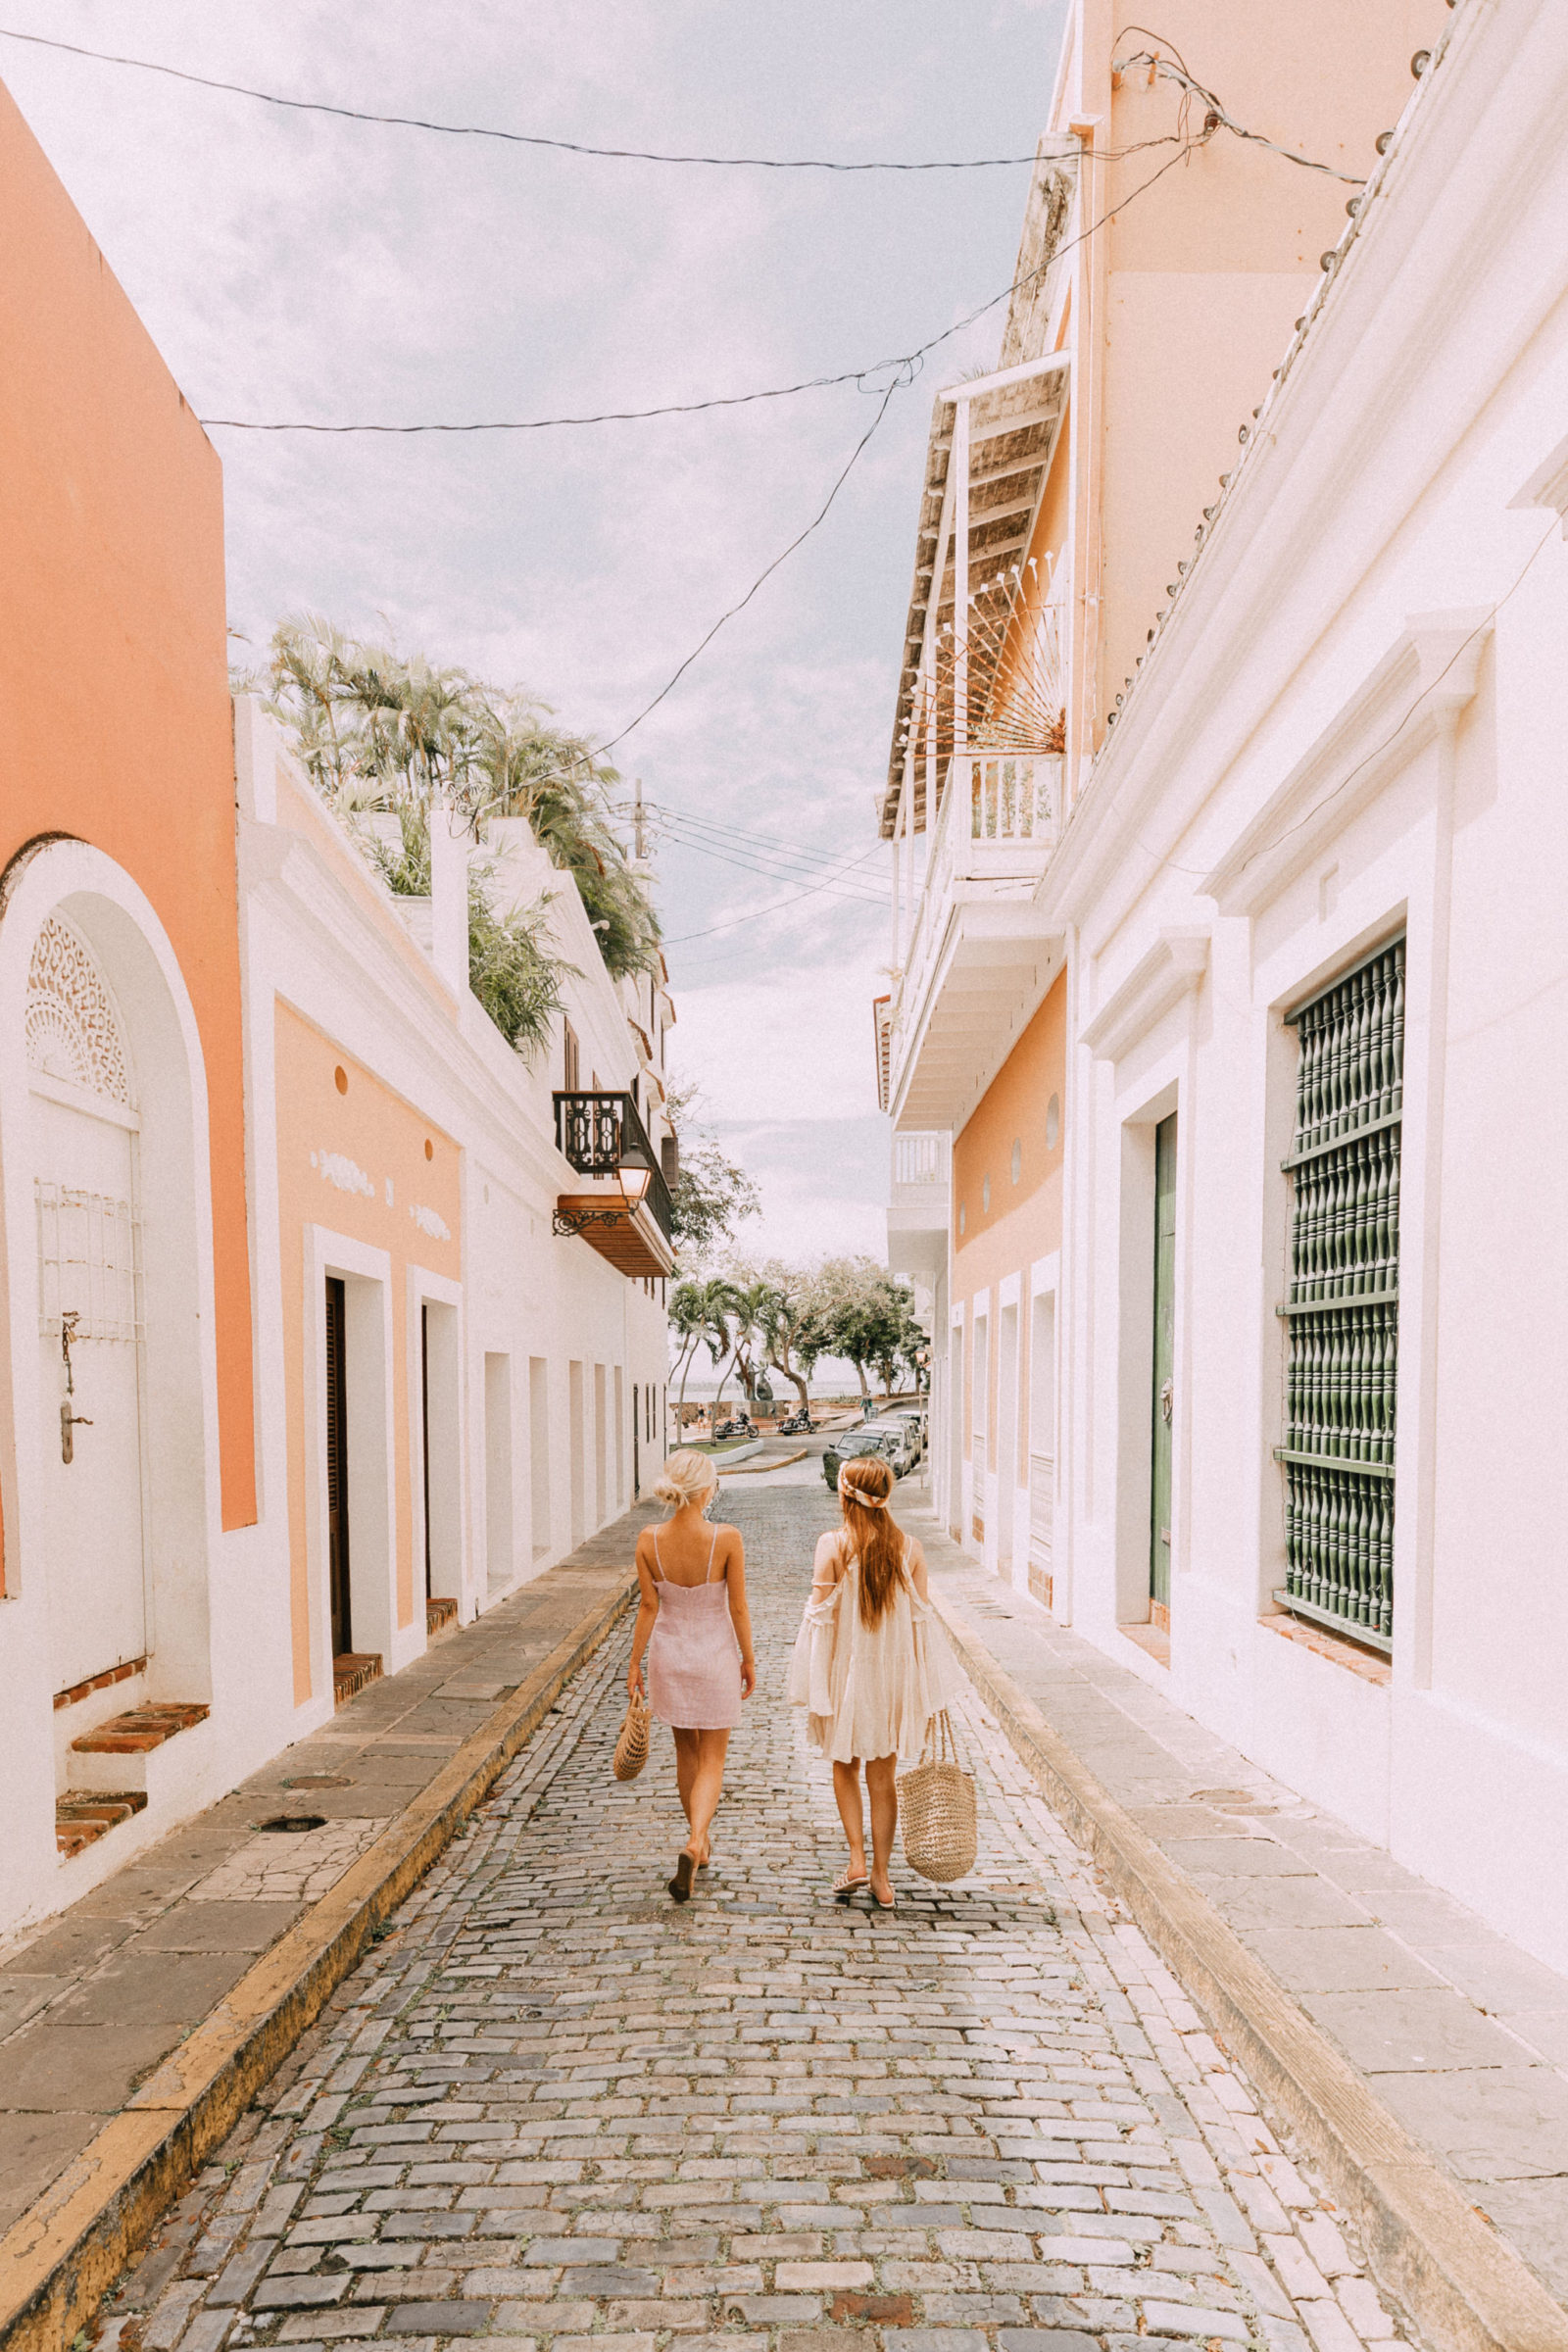 A Day in Old San Juan